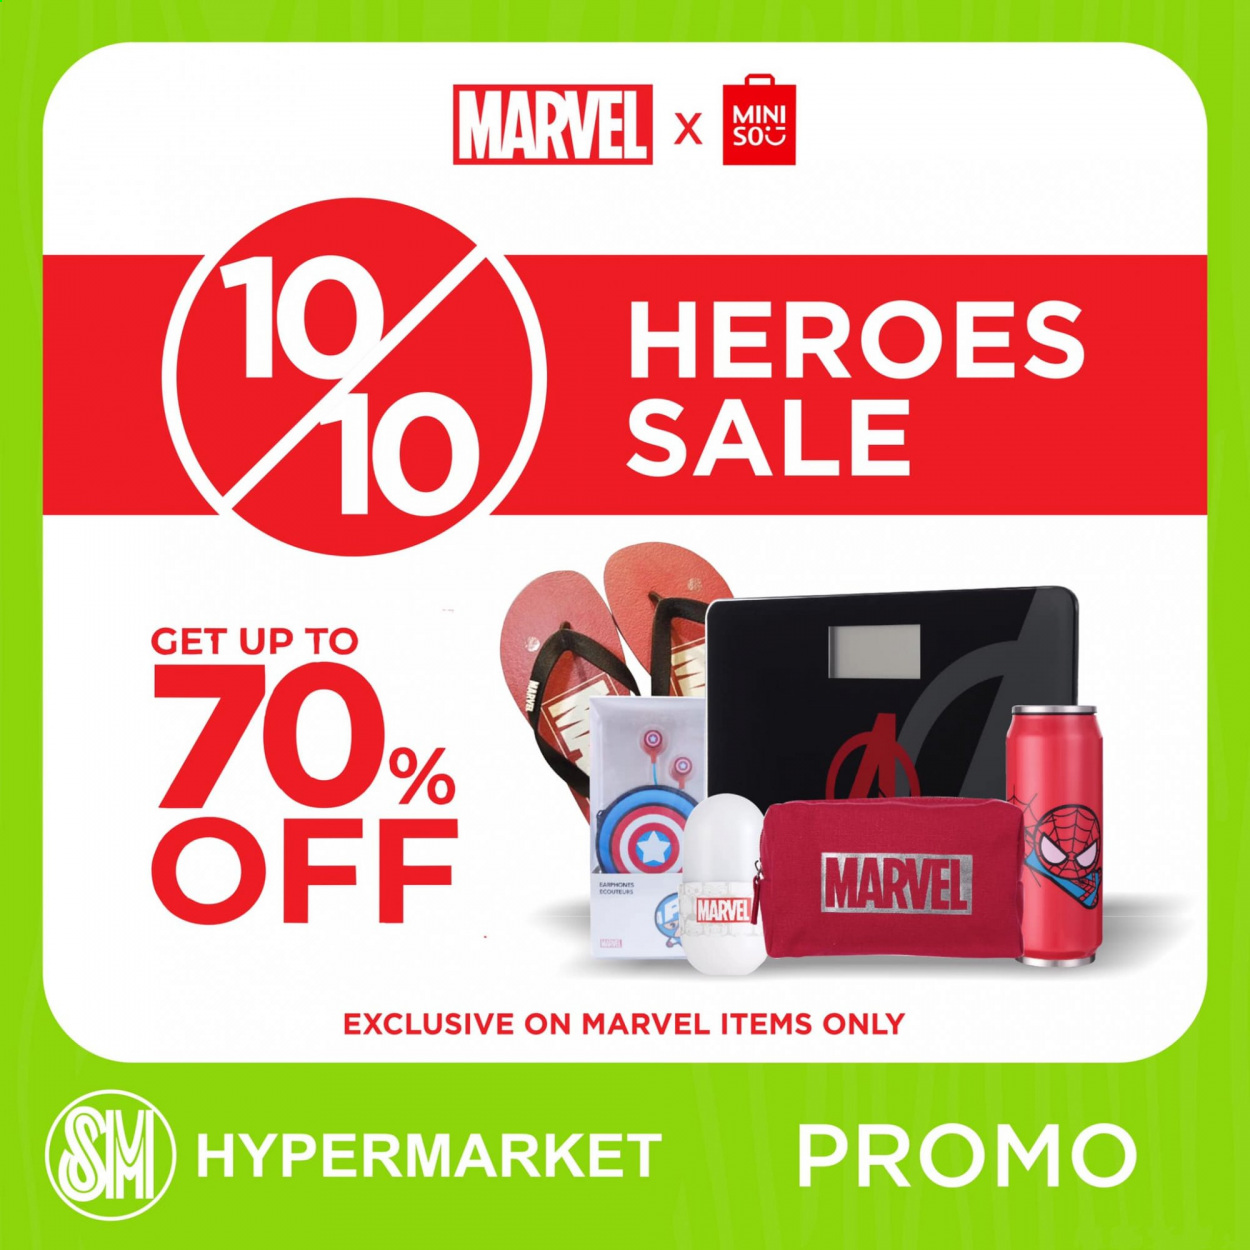 SM MARKETS offer  - 10.10.2020 - 10.10.2020 - Sales products - inner ear headphones, Marvel. Page 1.